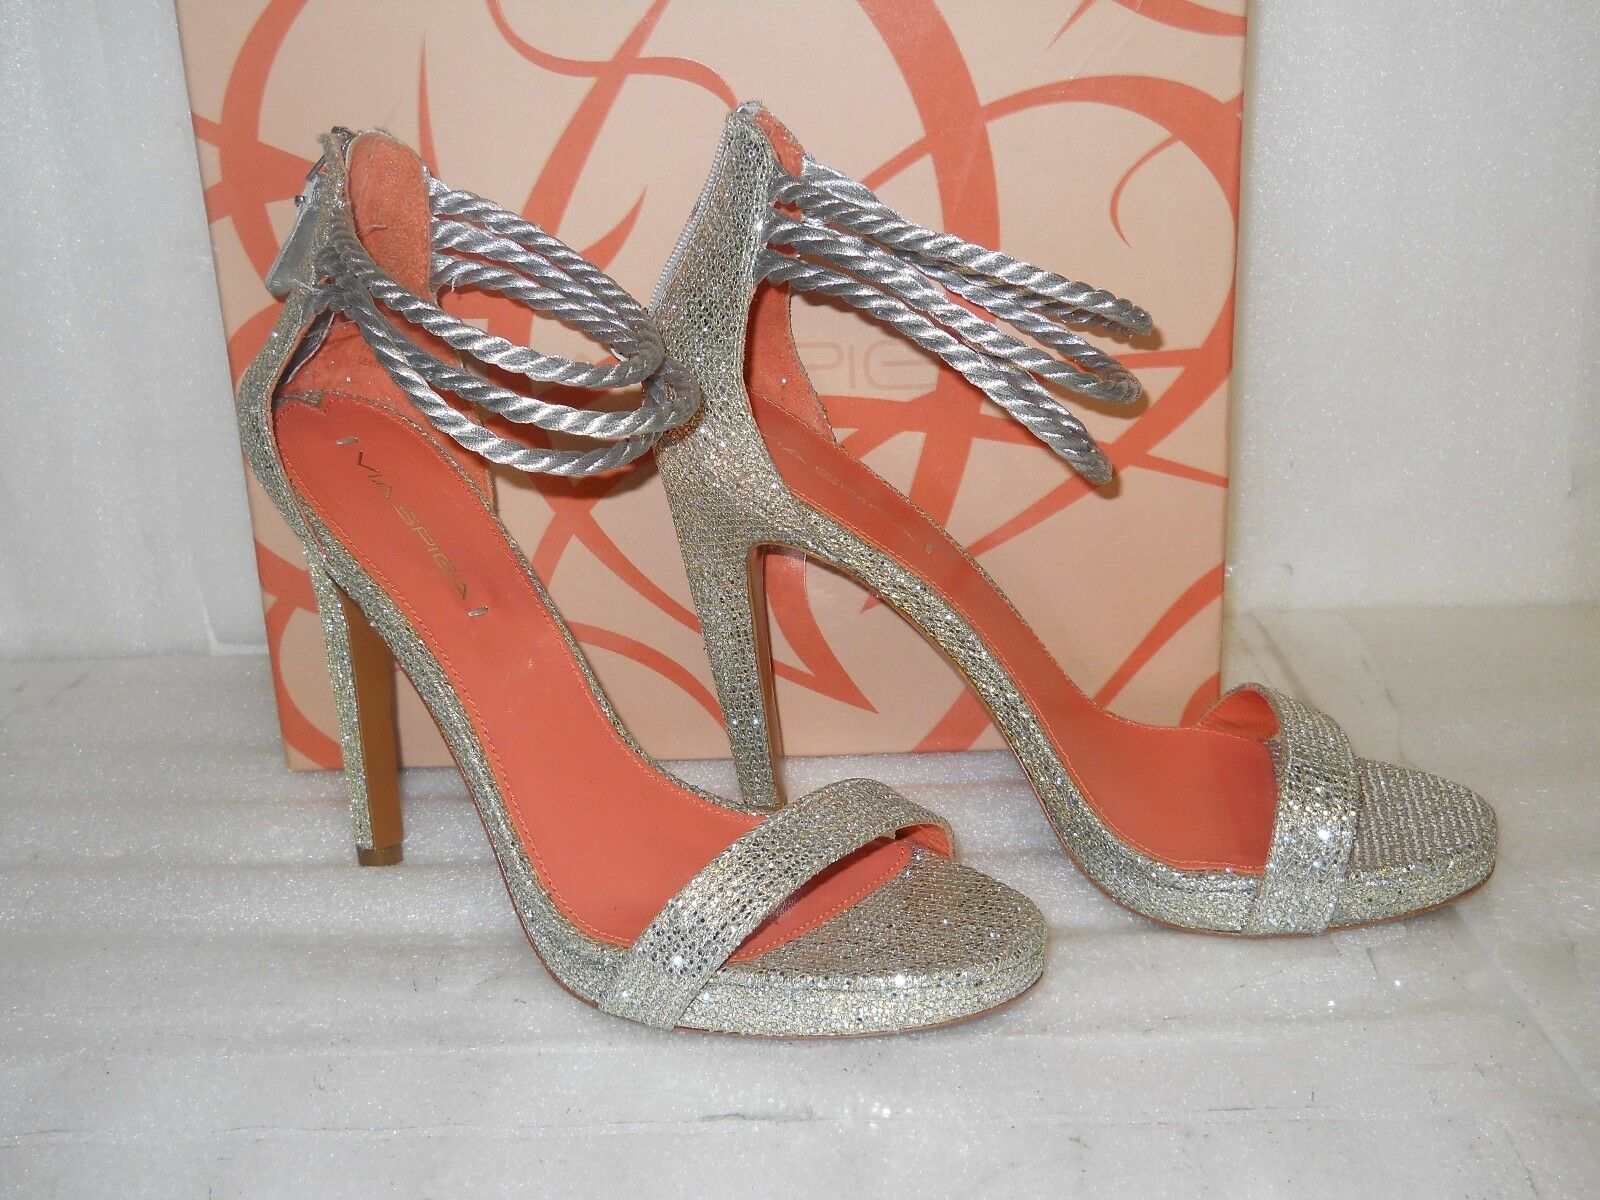 Via Spiga New Womens Penelope Silver Glitter Heels 9.5 M shoes NWB